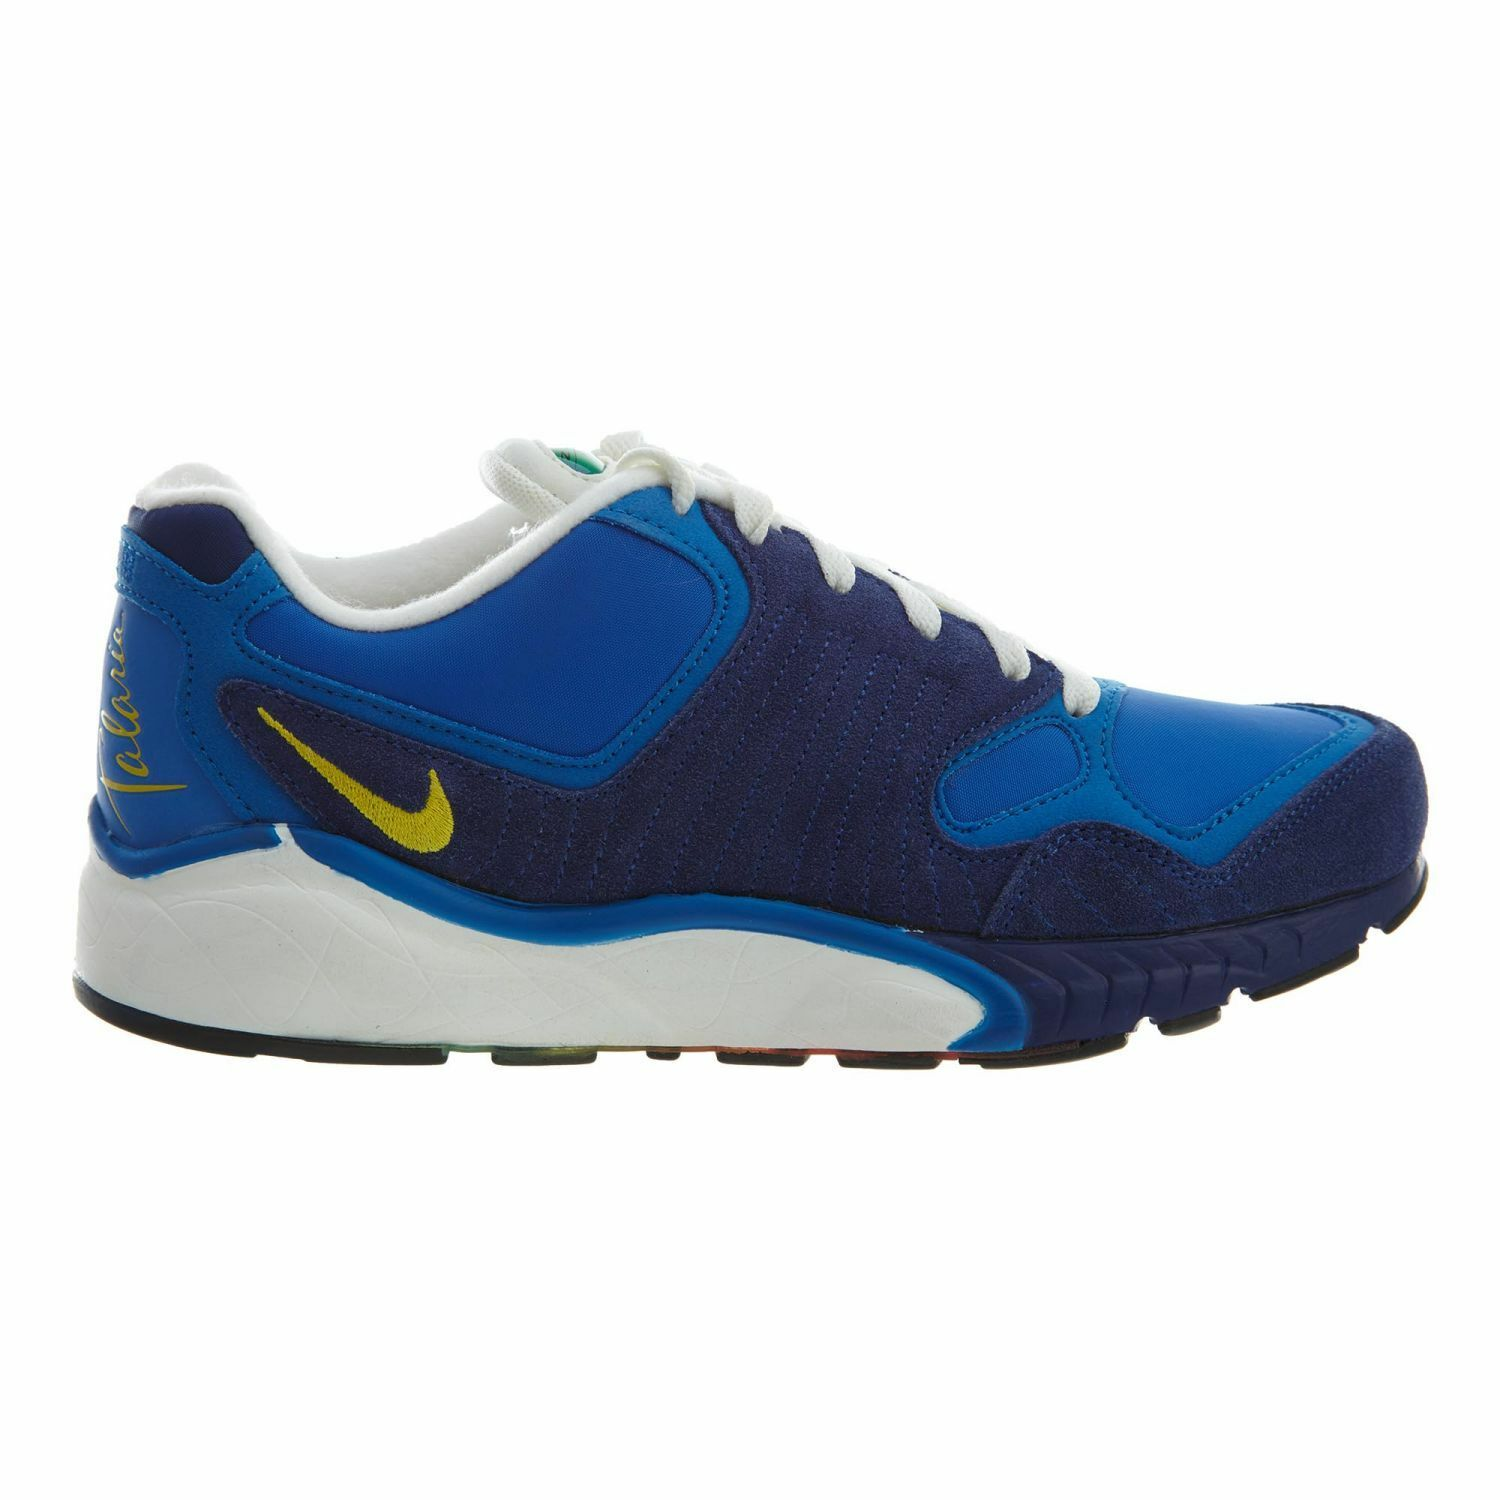 Nike Air Zoom Talaria '16 Uomo 844695-401 Soar Blue Running Shoes Size 7